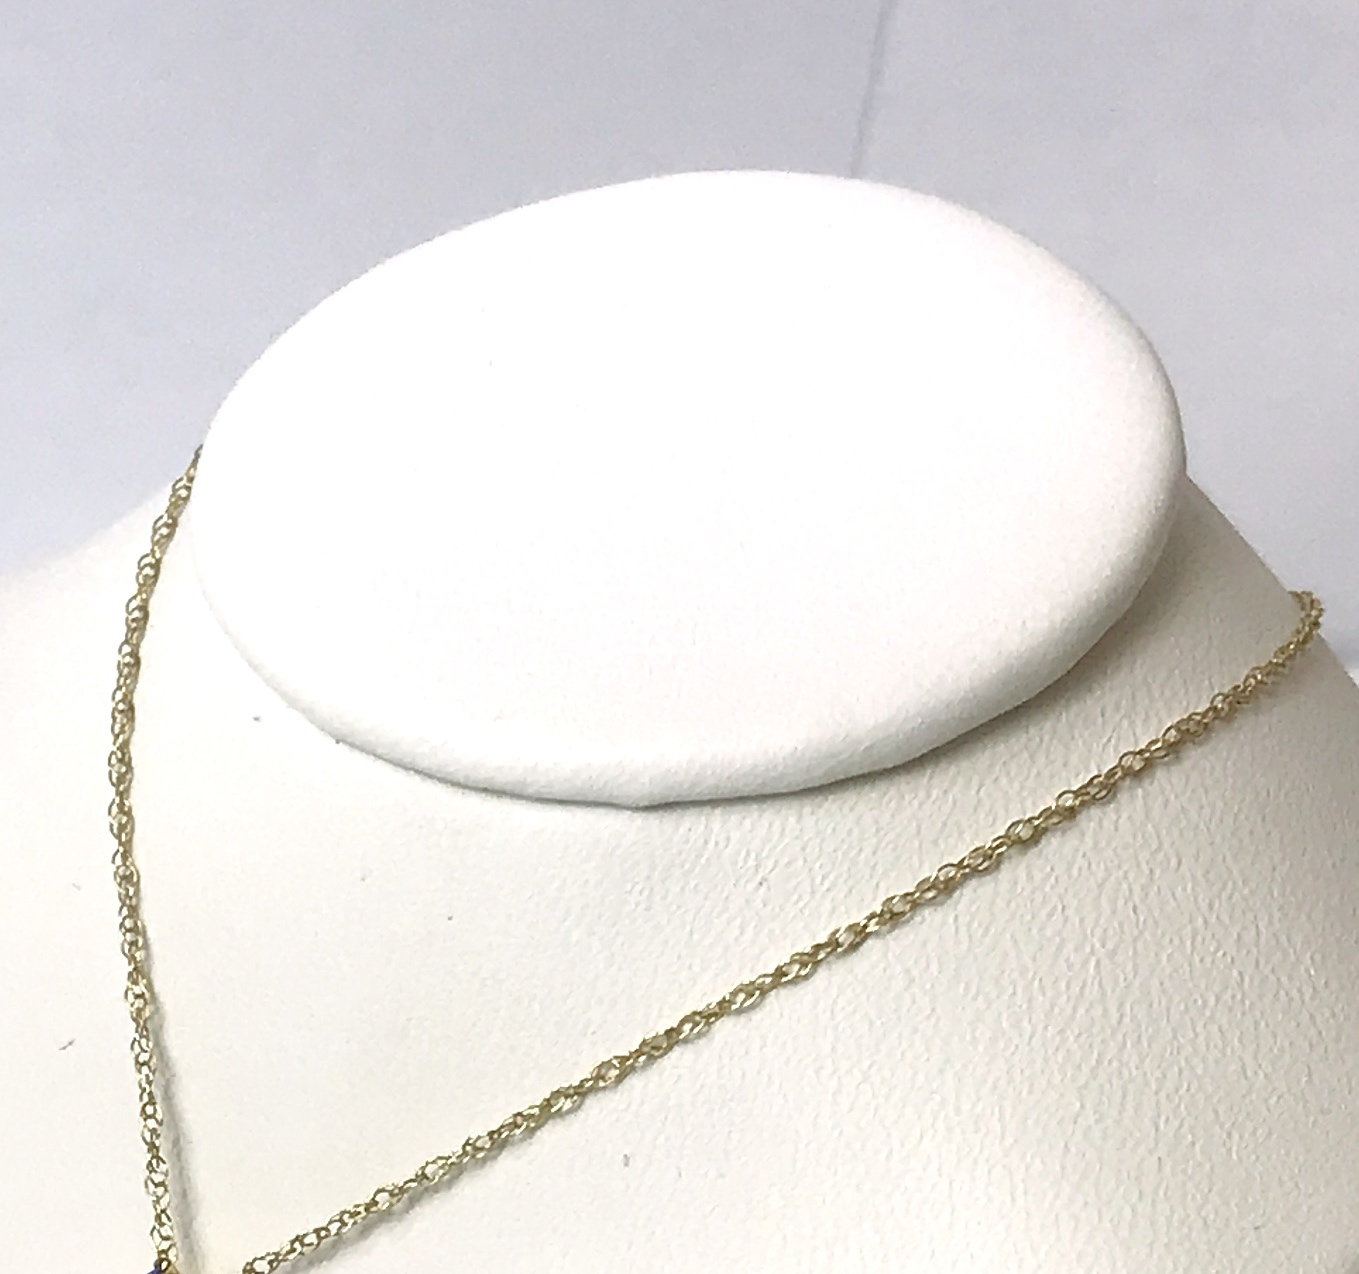 Double Link Chain 10K Yellow Gold .4g